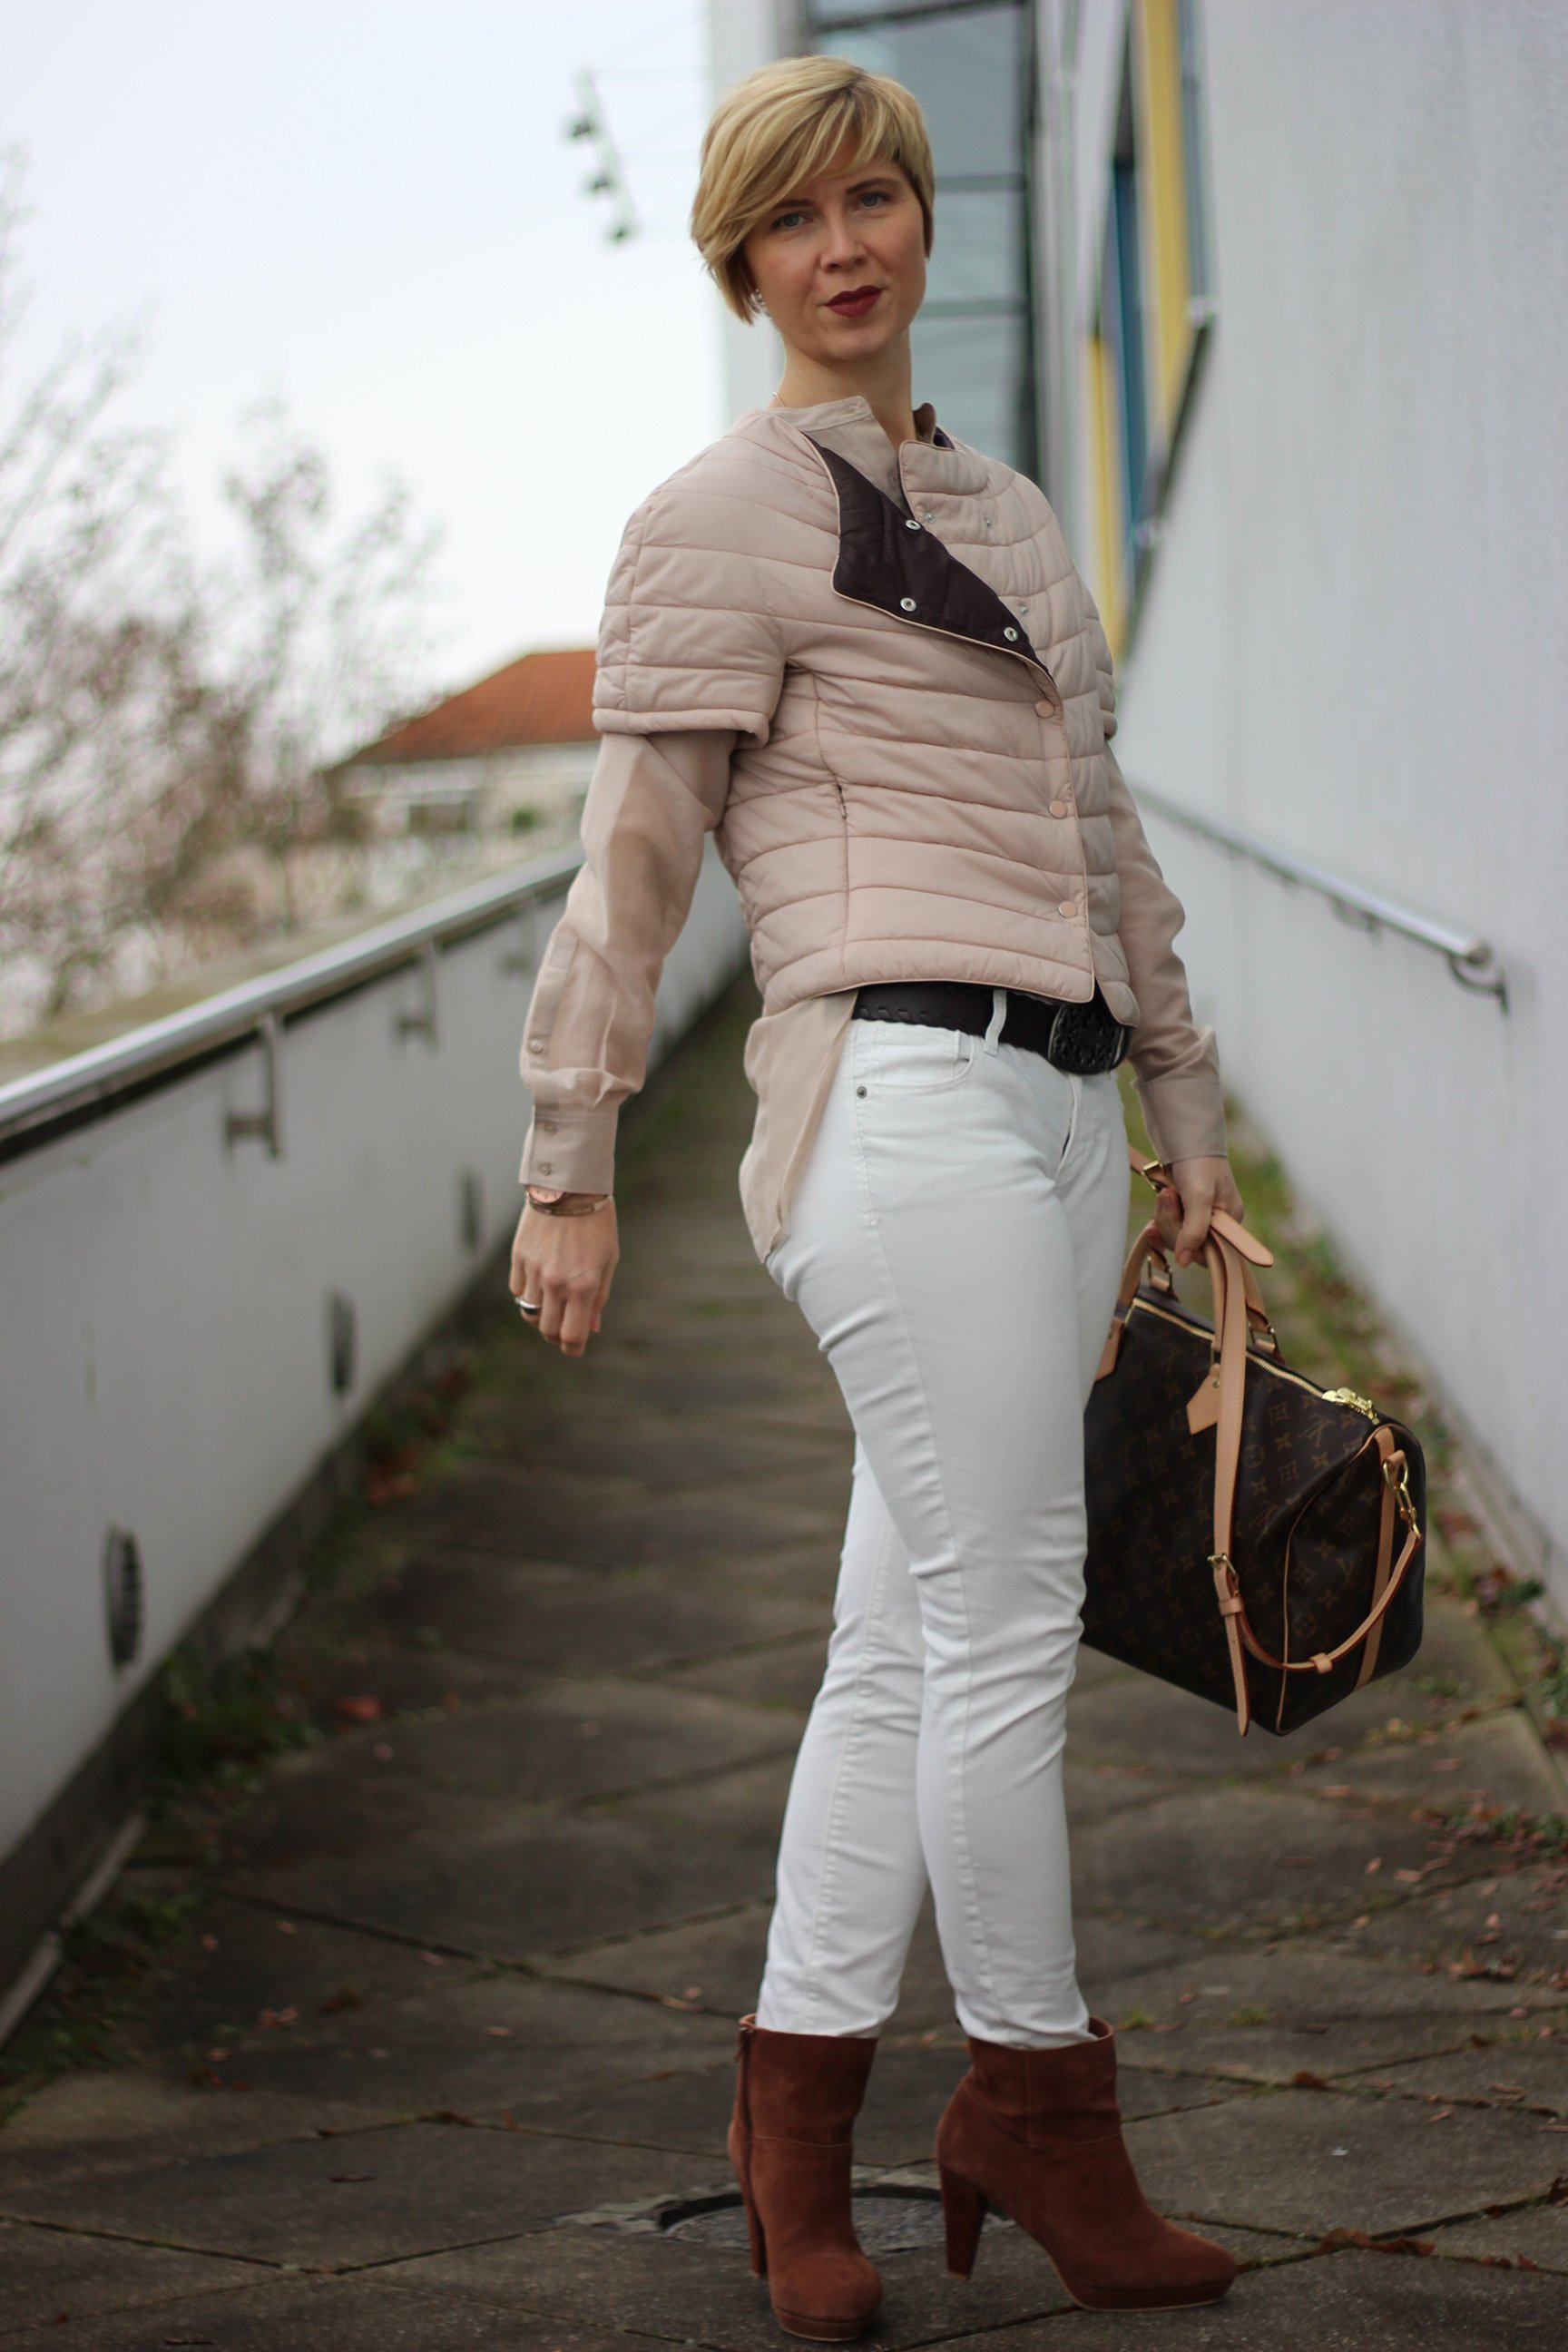 IMG_5860a_ConnyDoll_windsor_advent_seidenbluse_steppjacke_nude_hellbeige_louisvuitton_weisseHose